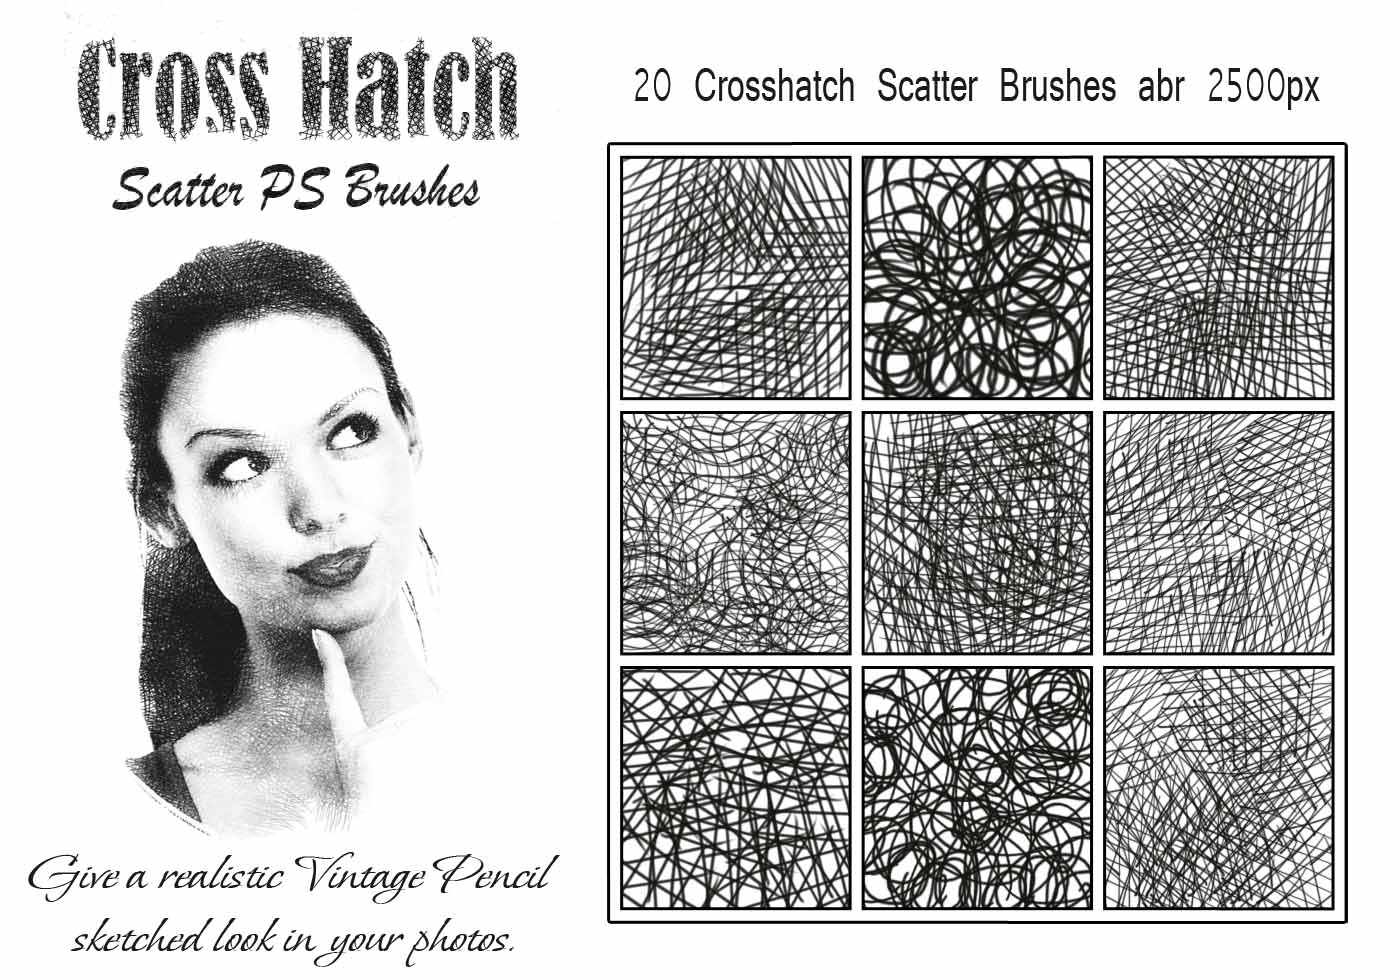 20 Cross Hatch Scatter Ps Brushes Abr